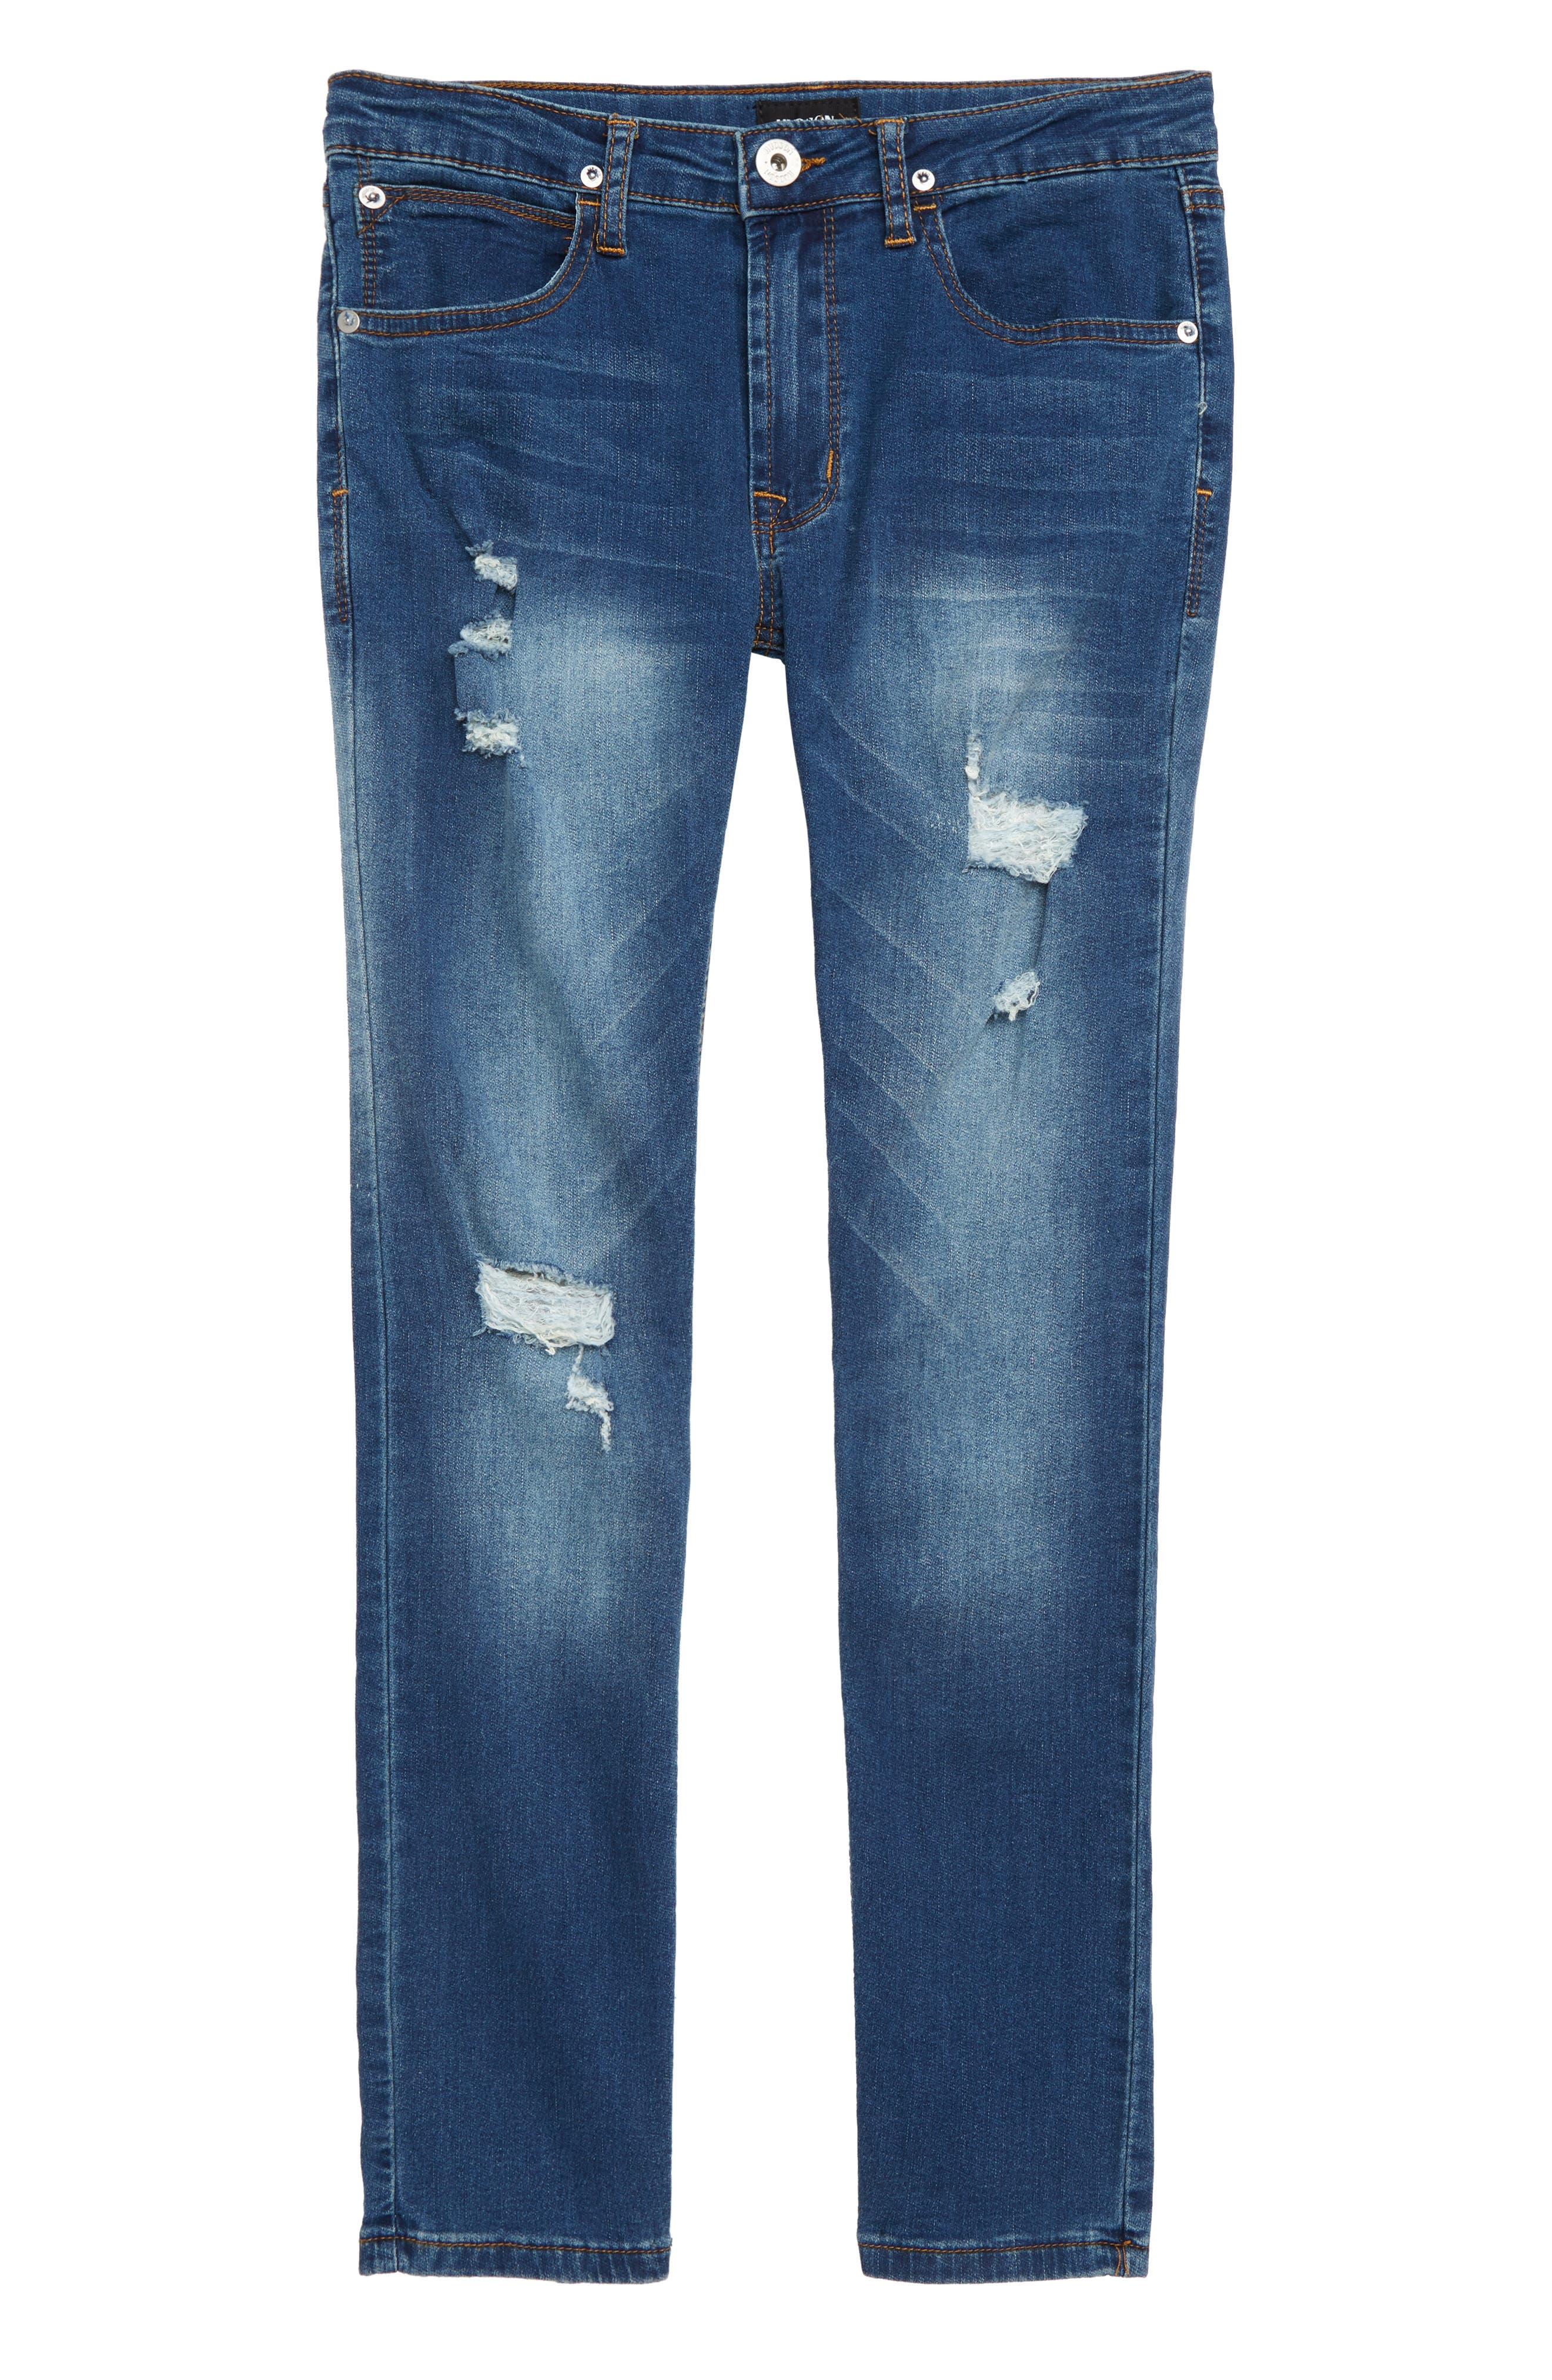 Jude Slim Fit Skinny Jeans,                             Main thumbnail 1, color,                             BLUE STEEL